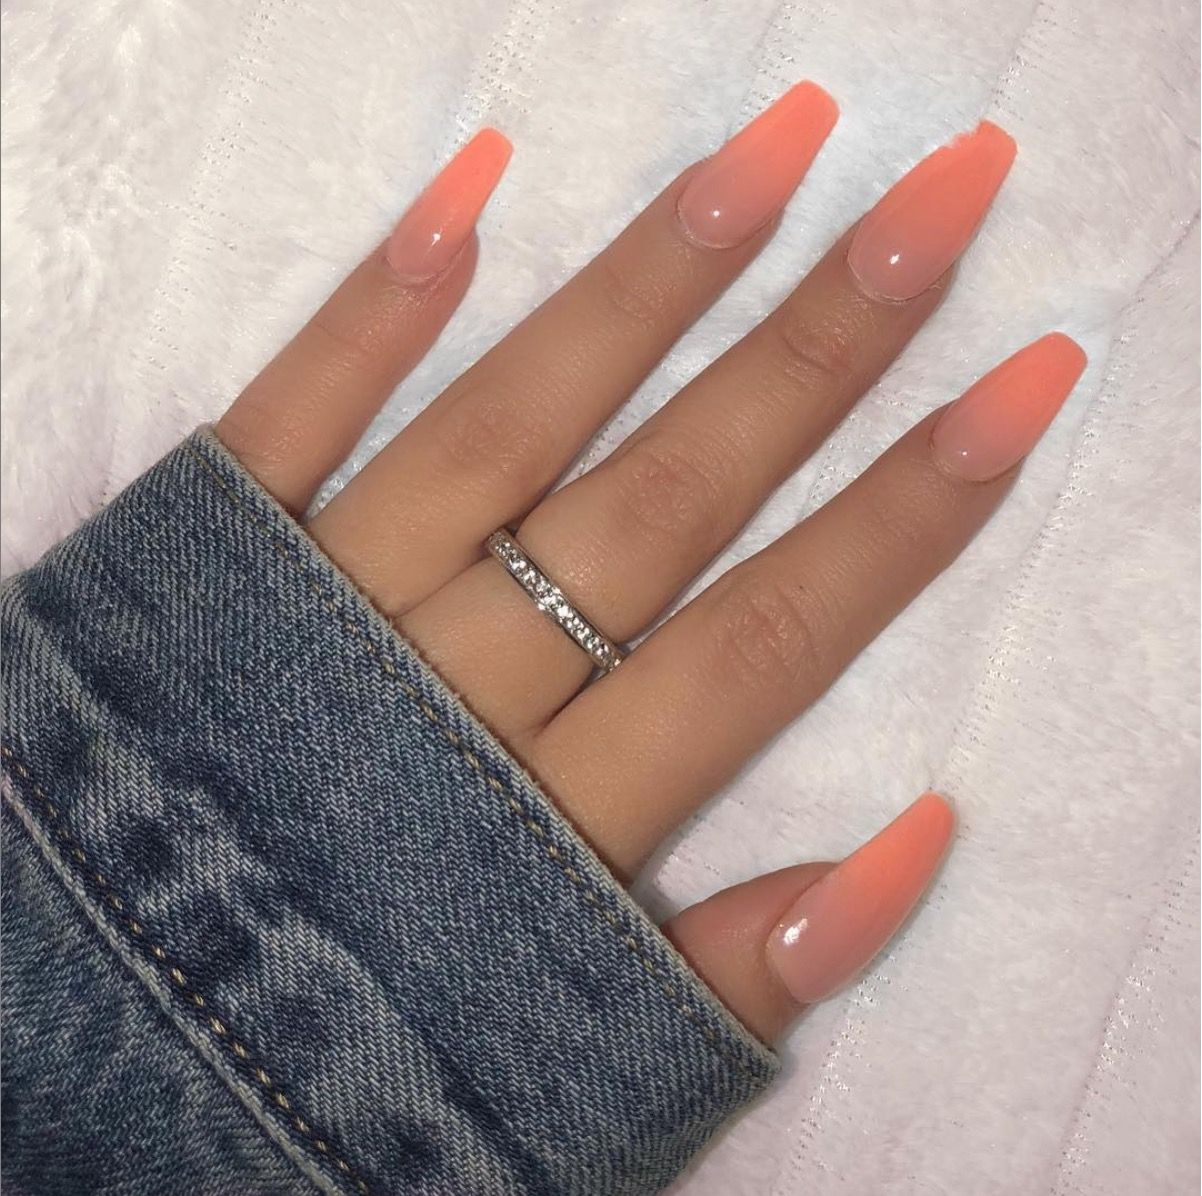 Not My Pic But Peach Acrylic Nails Peach Nails Ombre Acrylic Nails